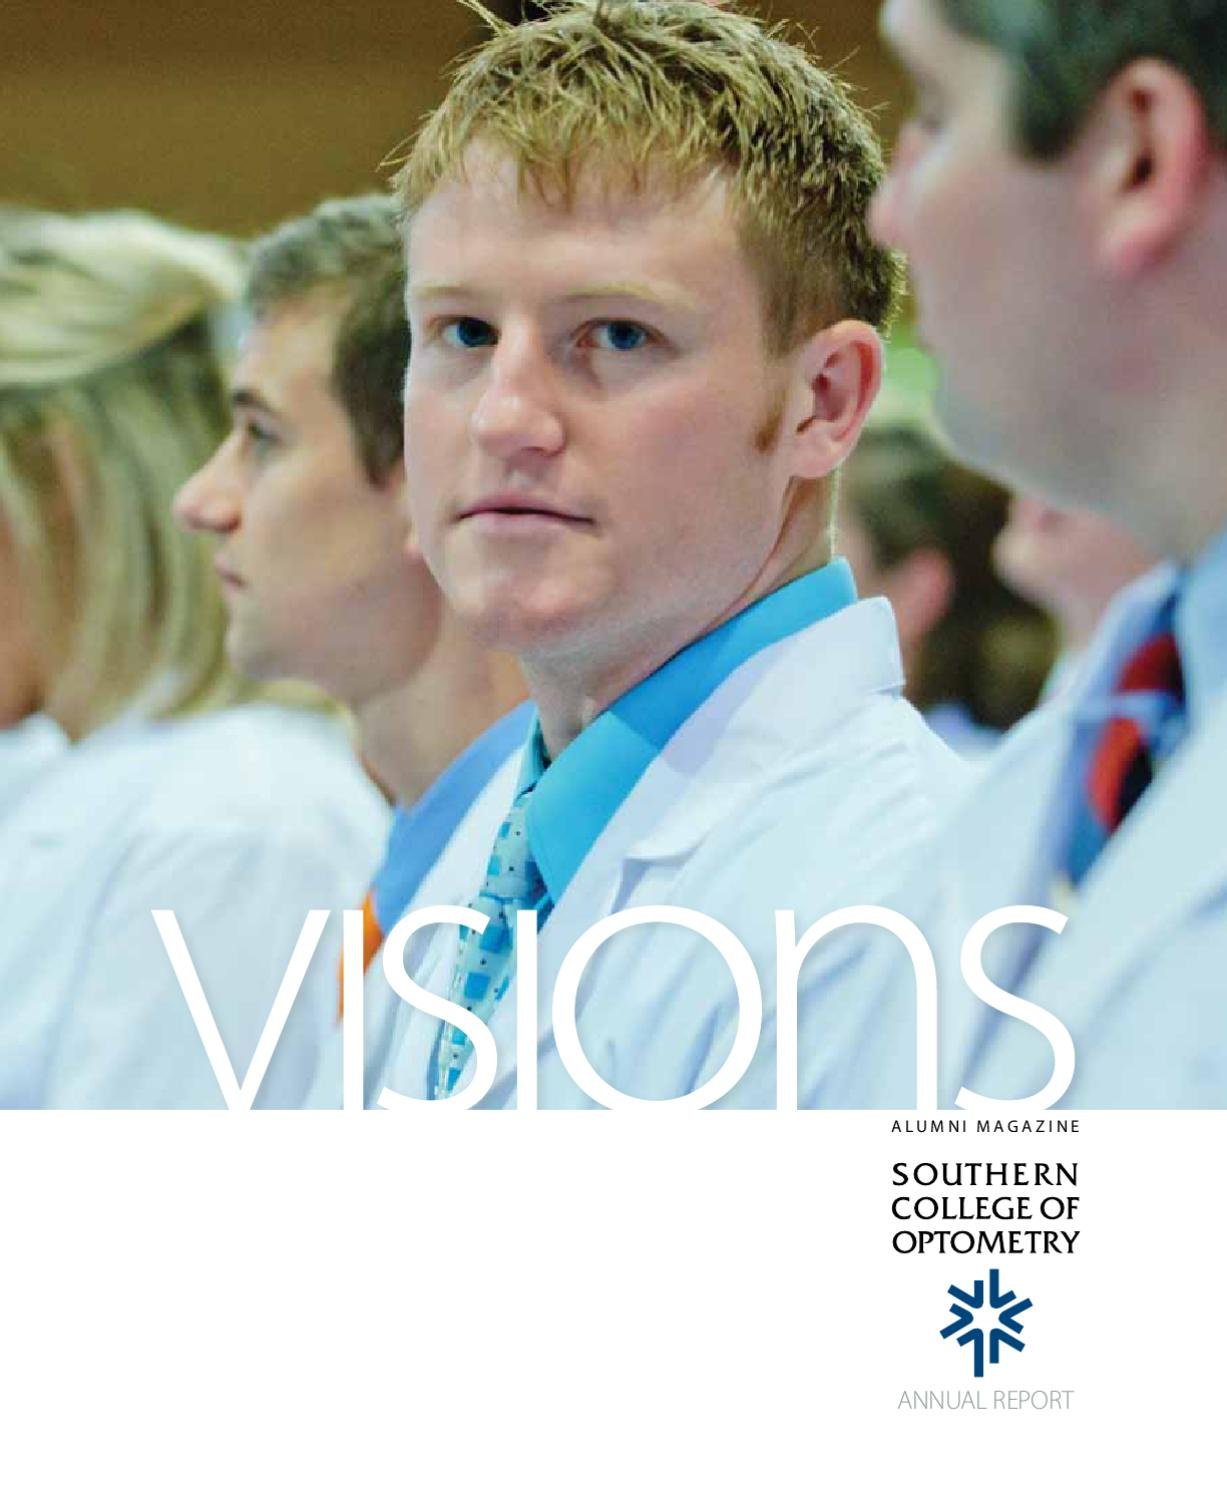 visions alumni magazine - annual report 2011 - southern college of